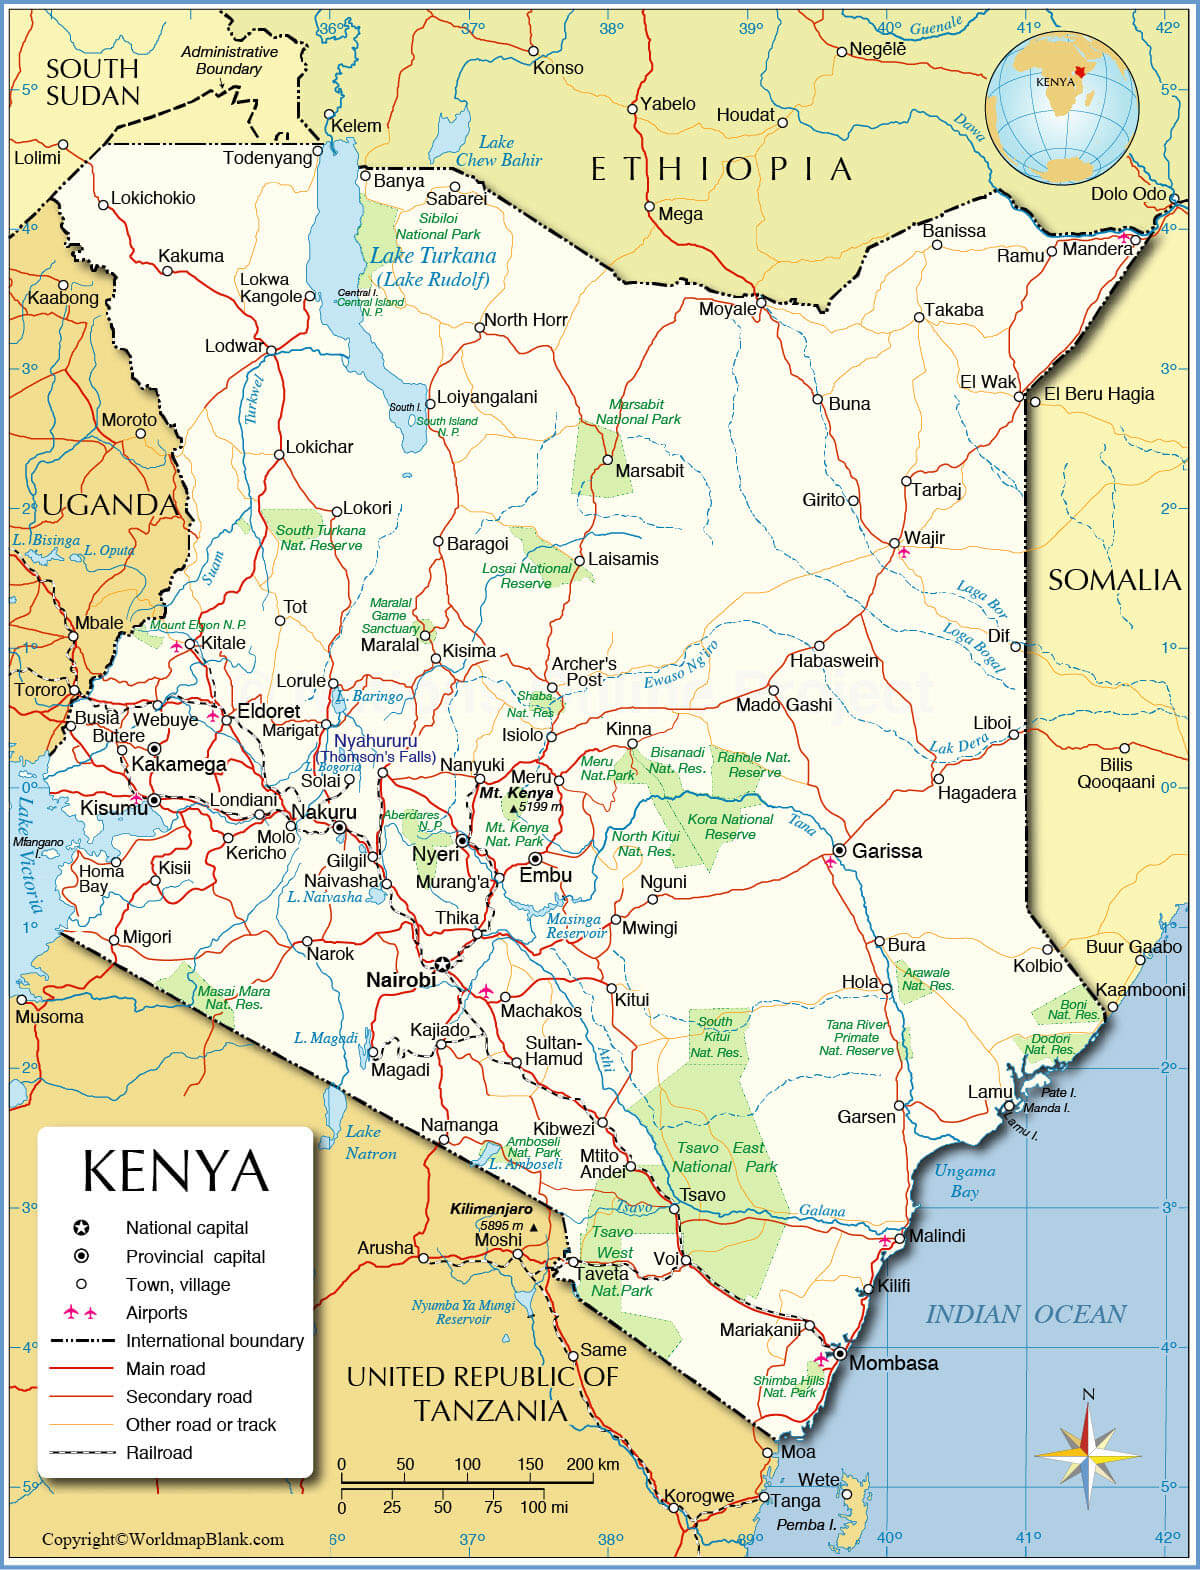 Labeled Kenya Map with Capital